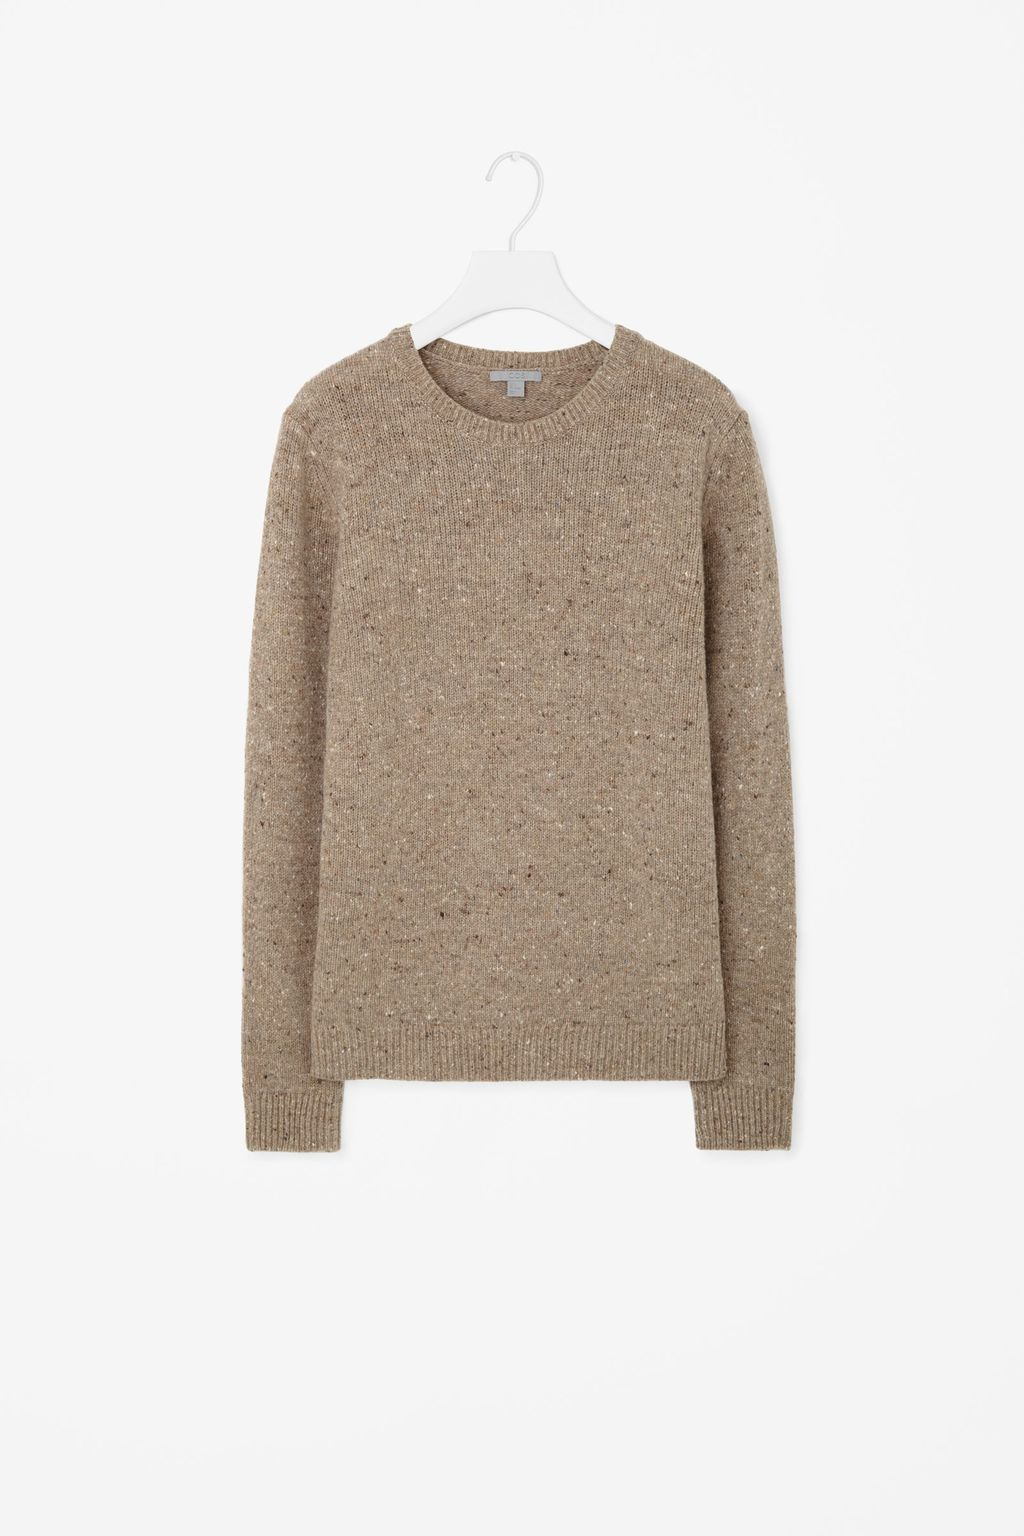 Wool Jumper With Speckles - pattern: plain; length: below the bottom; style: standard; predominant colour: taupe; occasions: casual, creative work; fibres: wool - 100%; fit: loose; neckline: crew; sleeve length: long sleeve; sleeve style: standard; texture group: knits/crochet; pattern type: knitted - other; season: s/s 2016; wardrobe: basic